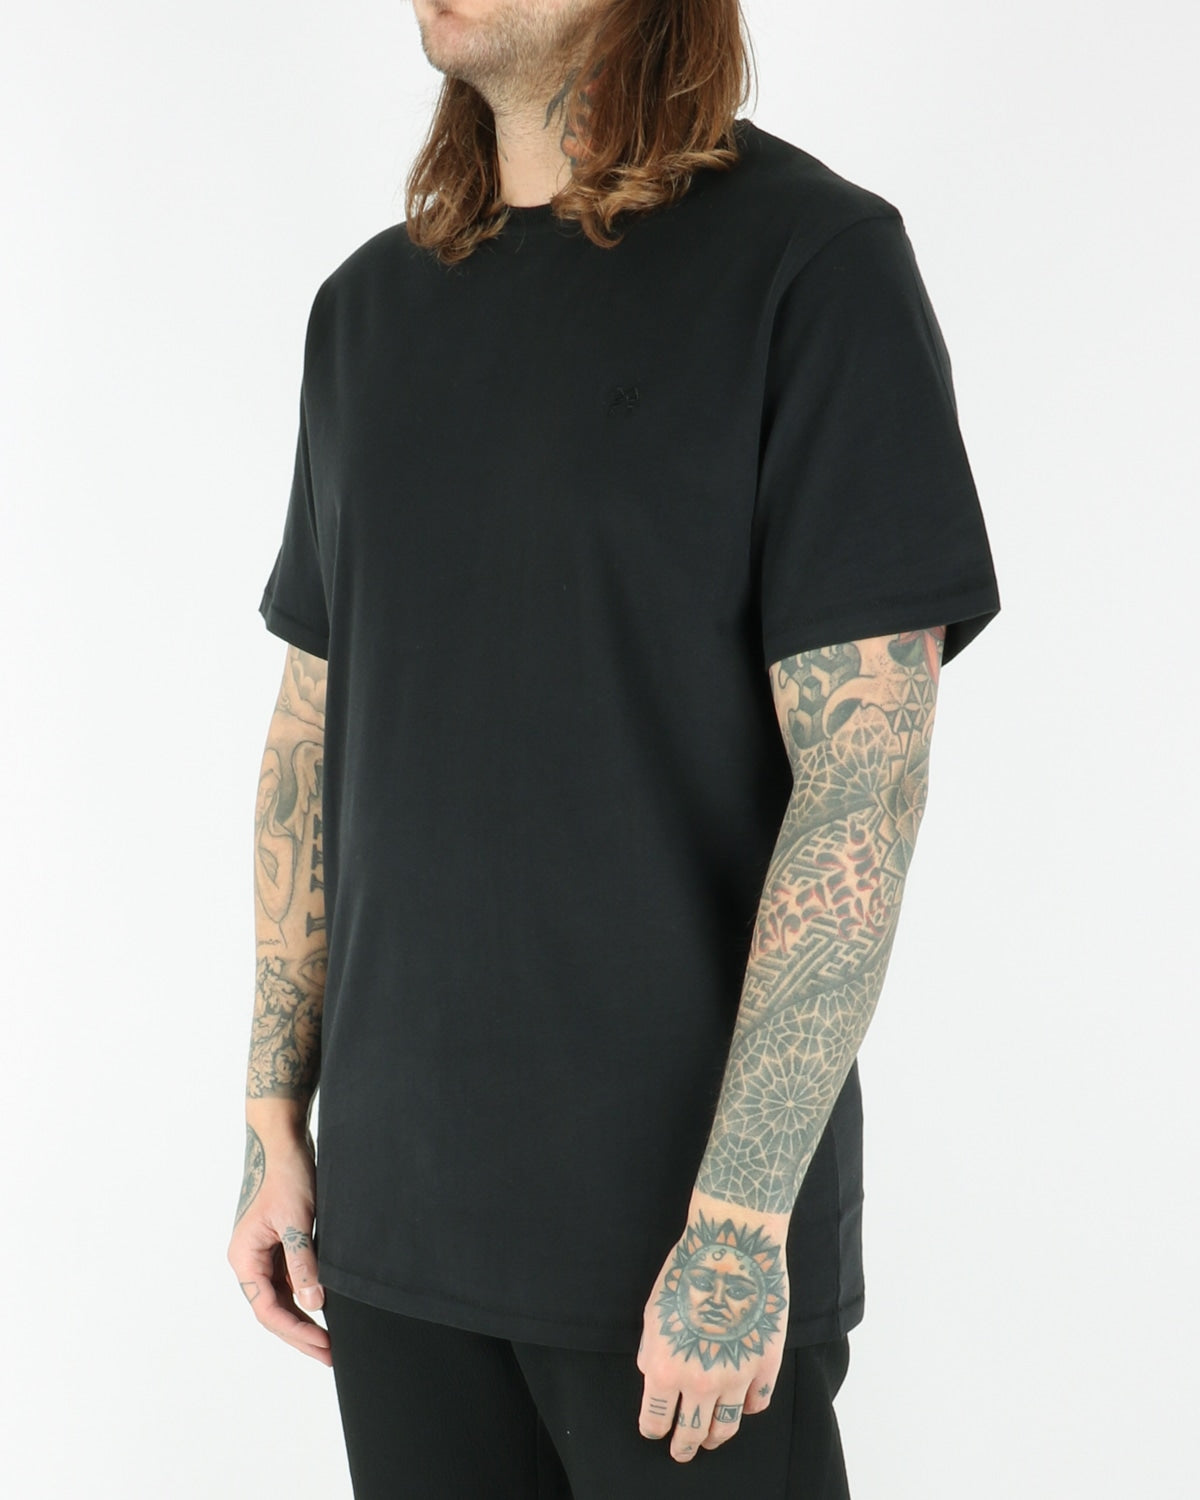 soulland_whatever t-shirt_black_view_2_3